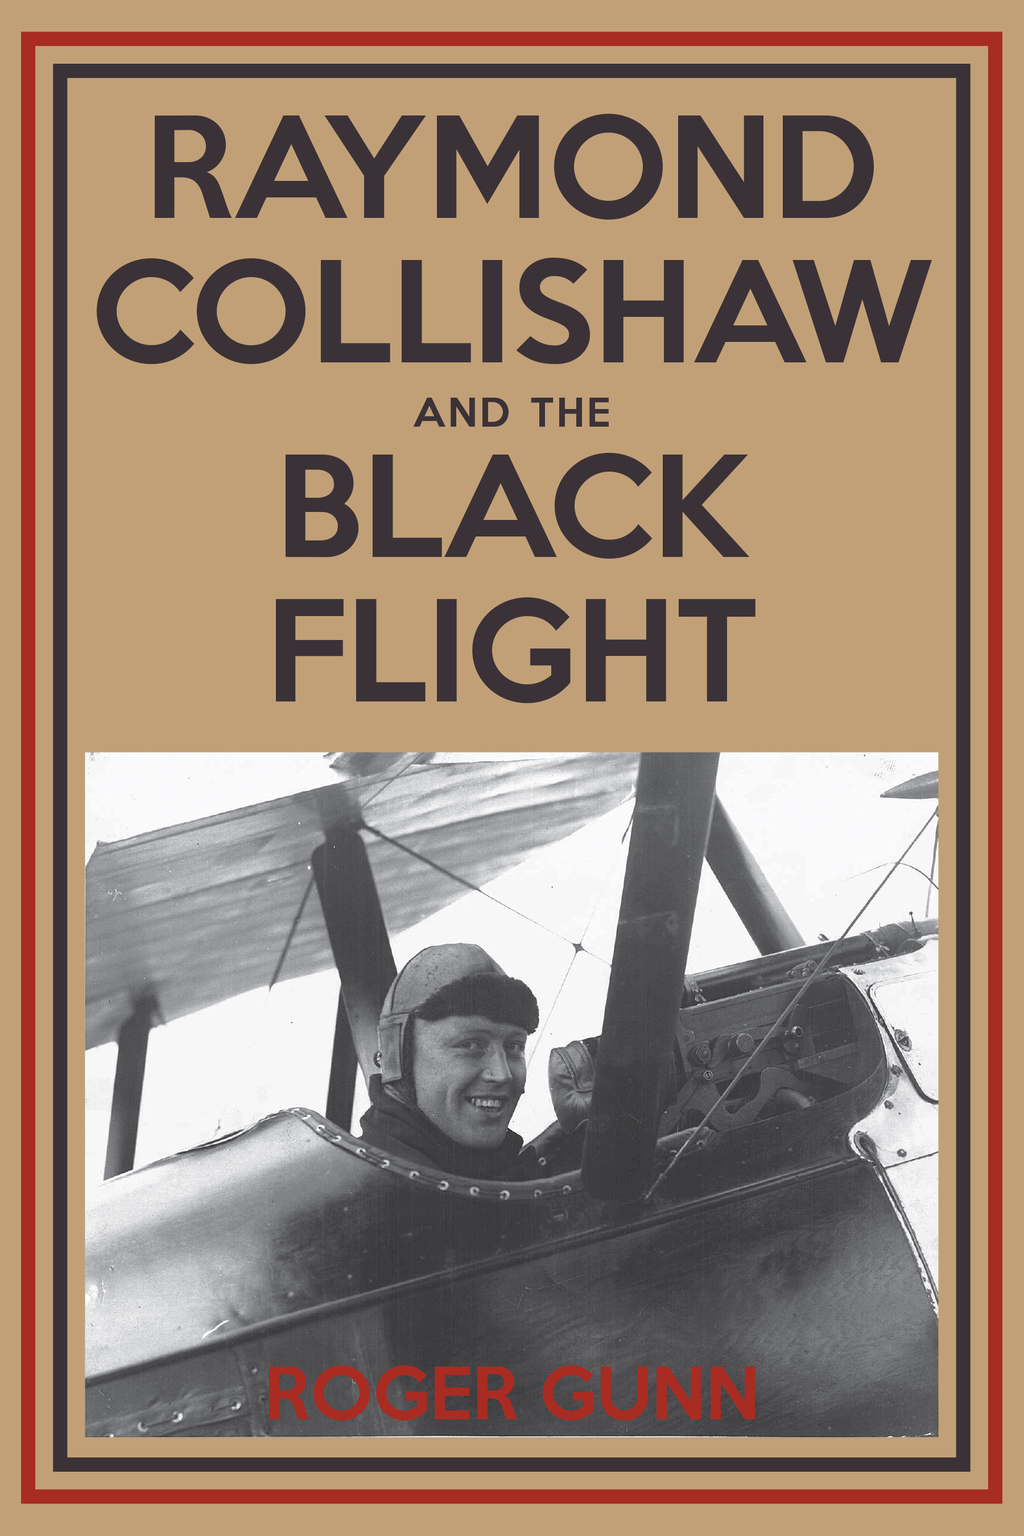 Raymond Collishaw and the Black Flight